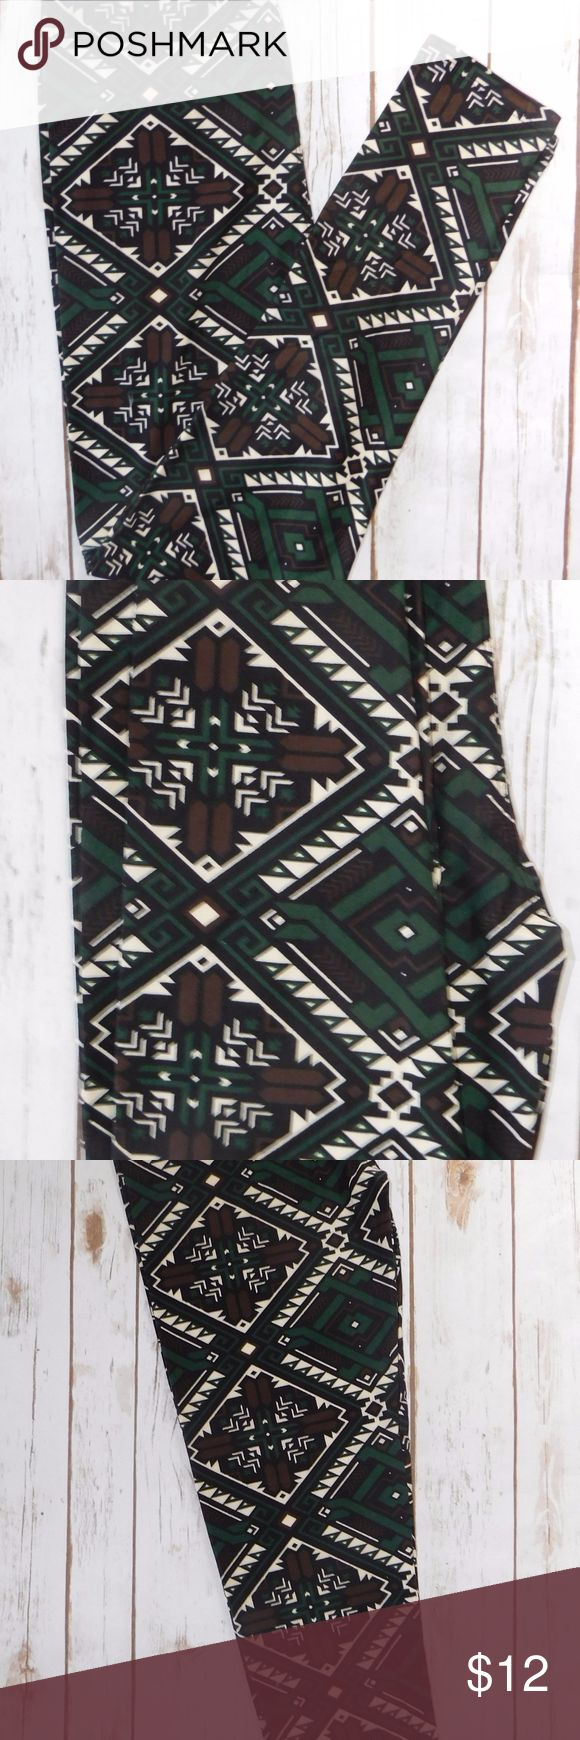 One Size Green Brown Tribal Print Leggings One Size fits 2-12 92% Polyester 8% Spandex Super super soft! Comparable to Lularoe but without the price! High waist Full length 1in elastic waist band New Mix Pants Leggings